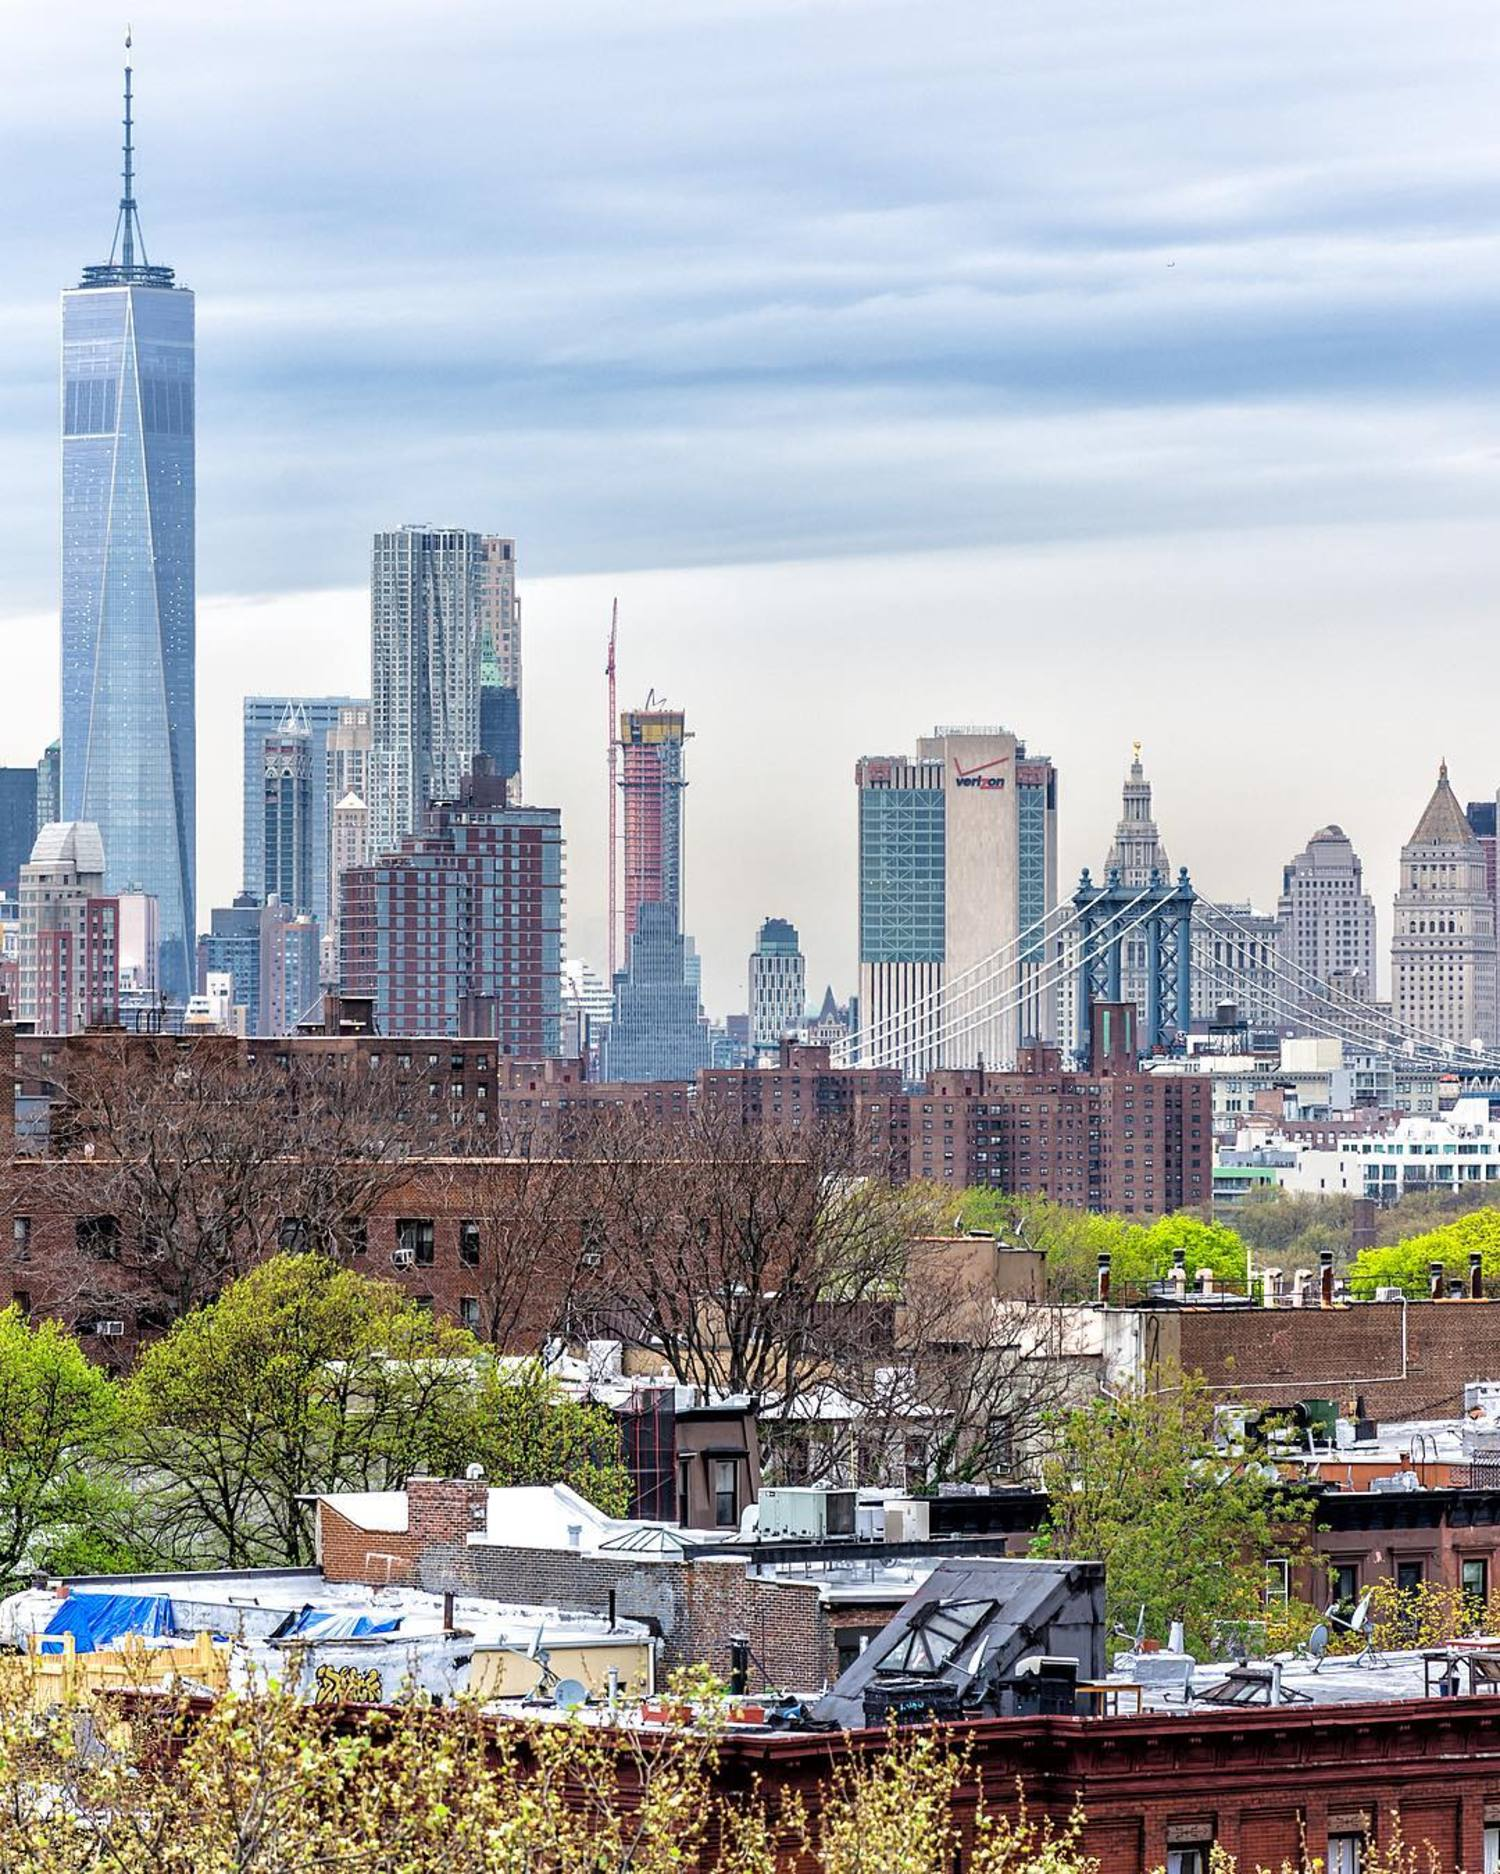 Here's a new vista I found of Clinton Hill and Fort Greene, Brooklyn with Lower Manhattan on the horizon.